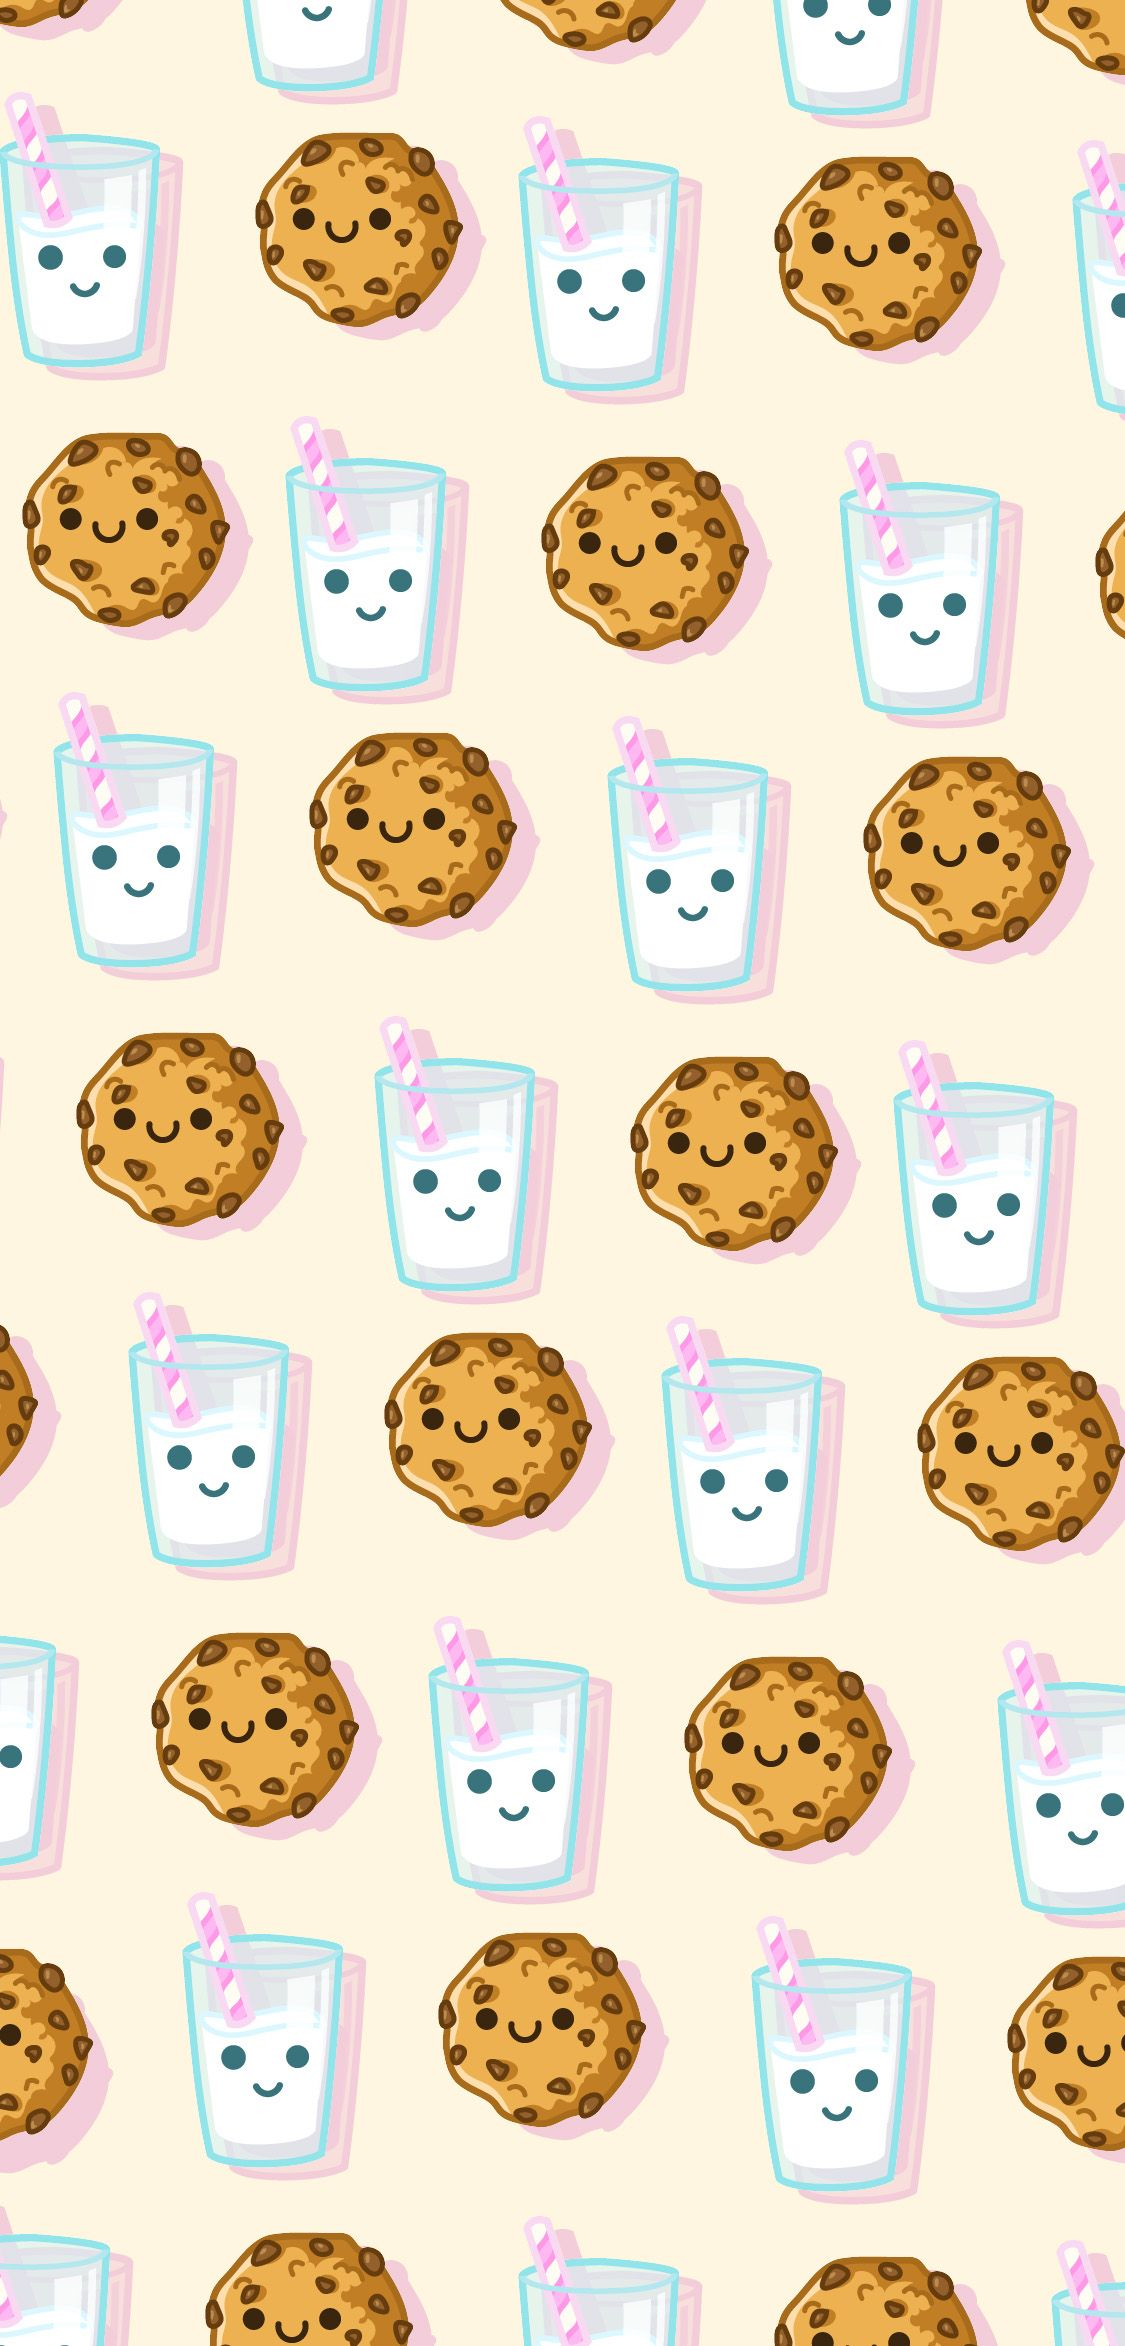 Cute Milk And Cookie Phone Wallpaper In 2020 Wallpaper Iphone Cute Aesthetic Iphone Wallpaper Cookie Drawing